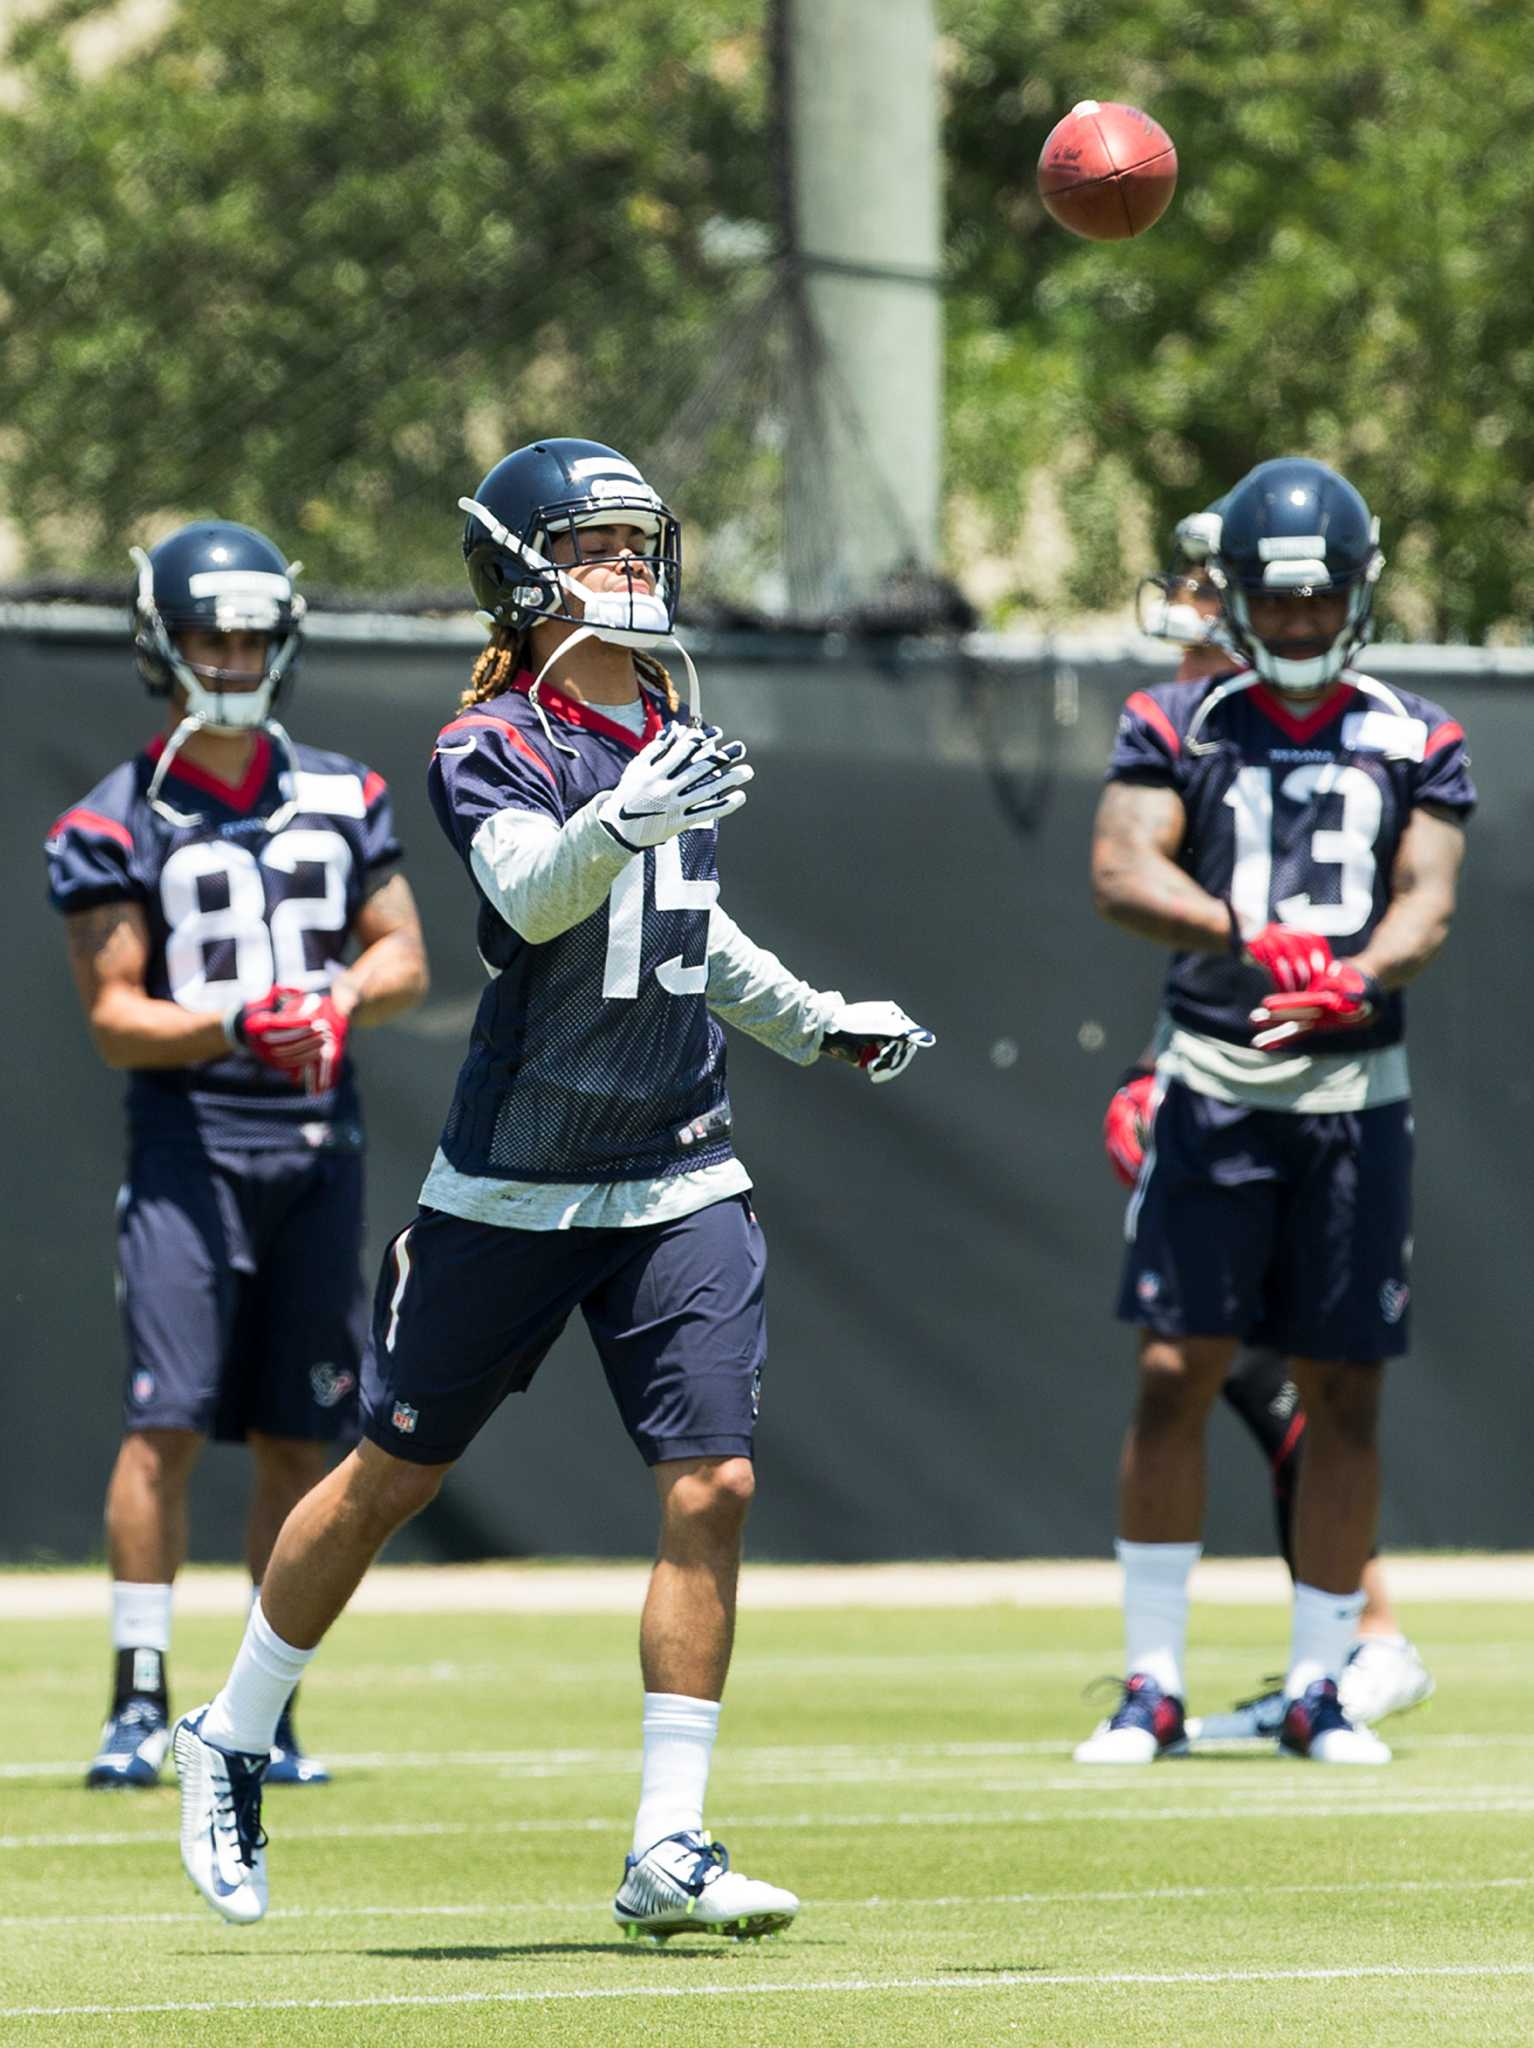 db0ec7eba Texans report  Even the speedy Will Fuller awed by speed of game -  HoustonChronicle.com